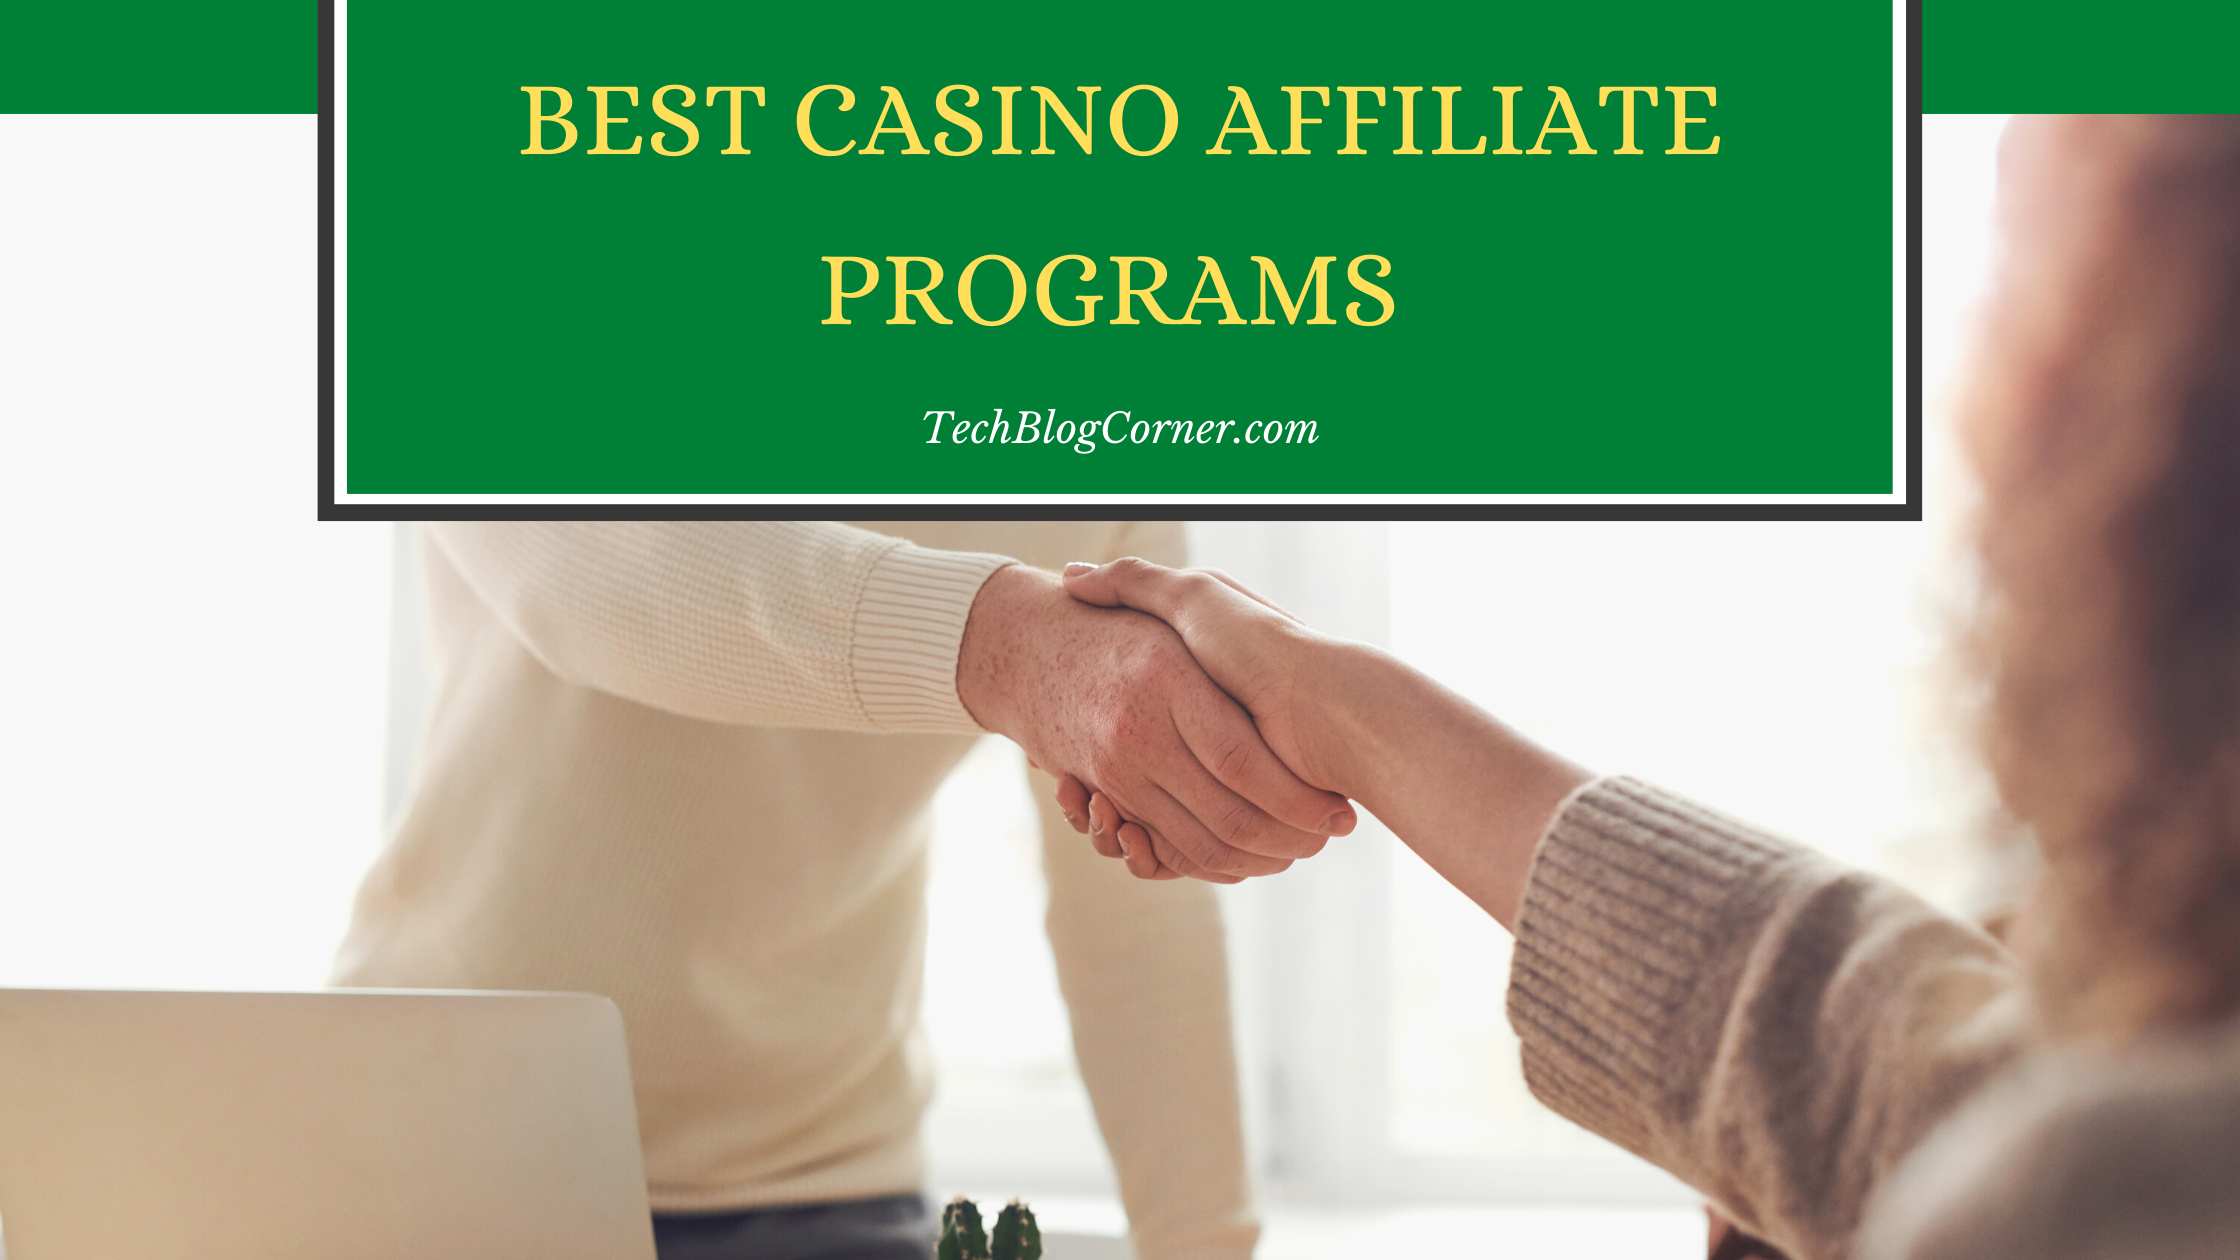 5 Best Casino Affiliate Programs & Networks for 2020